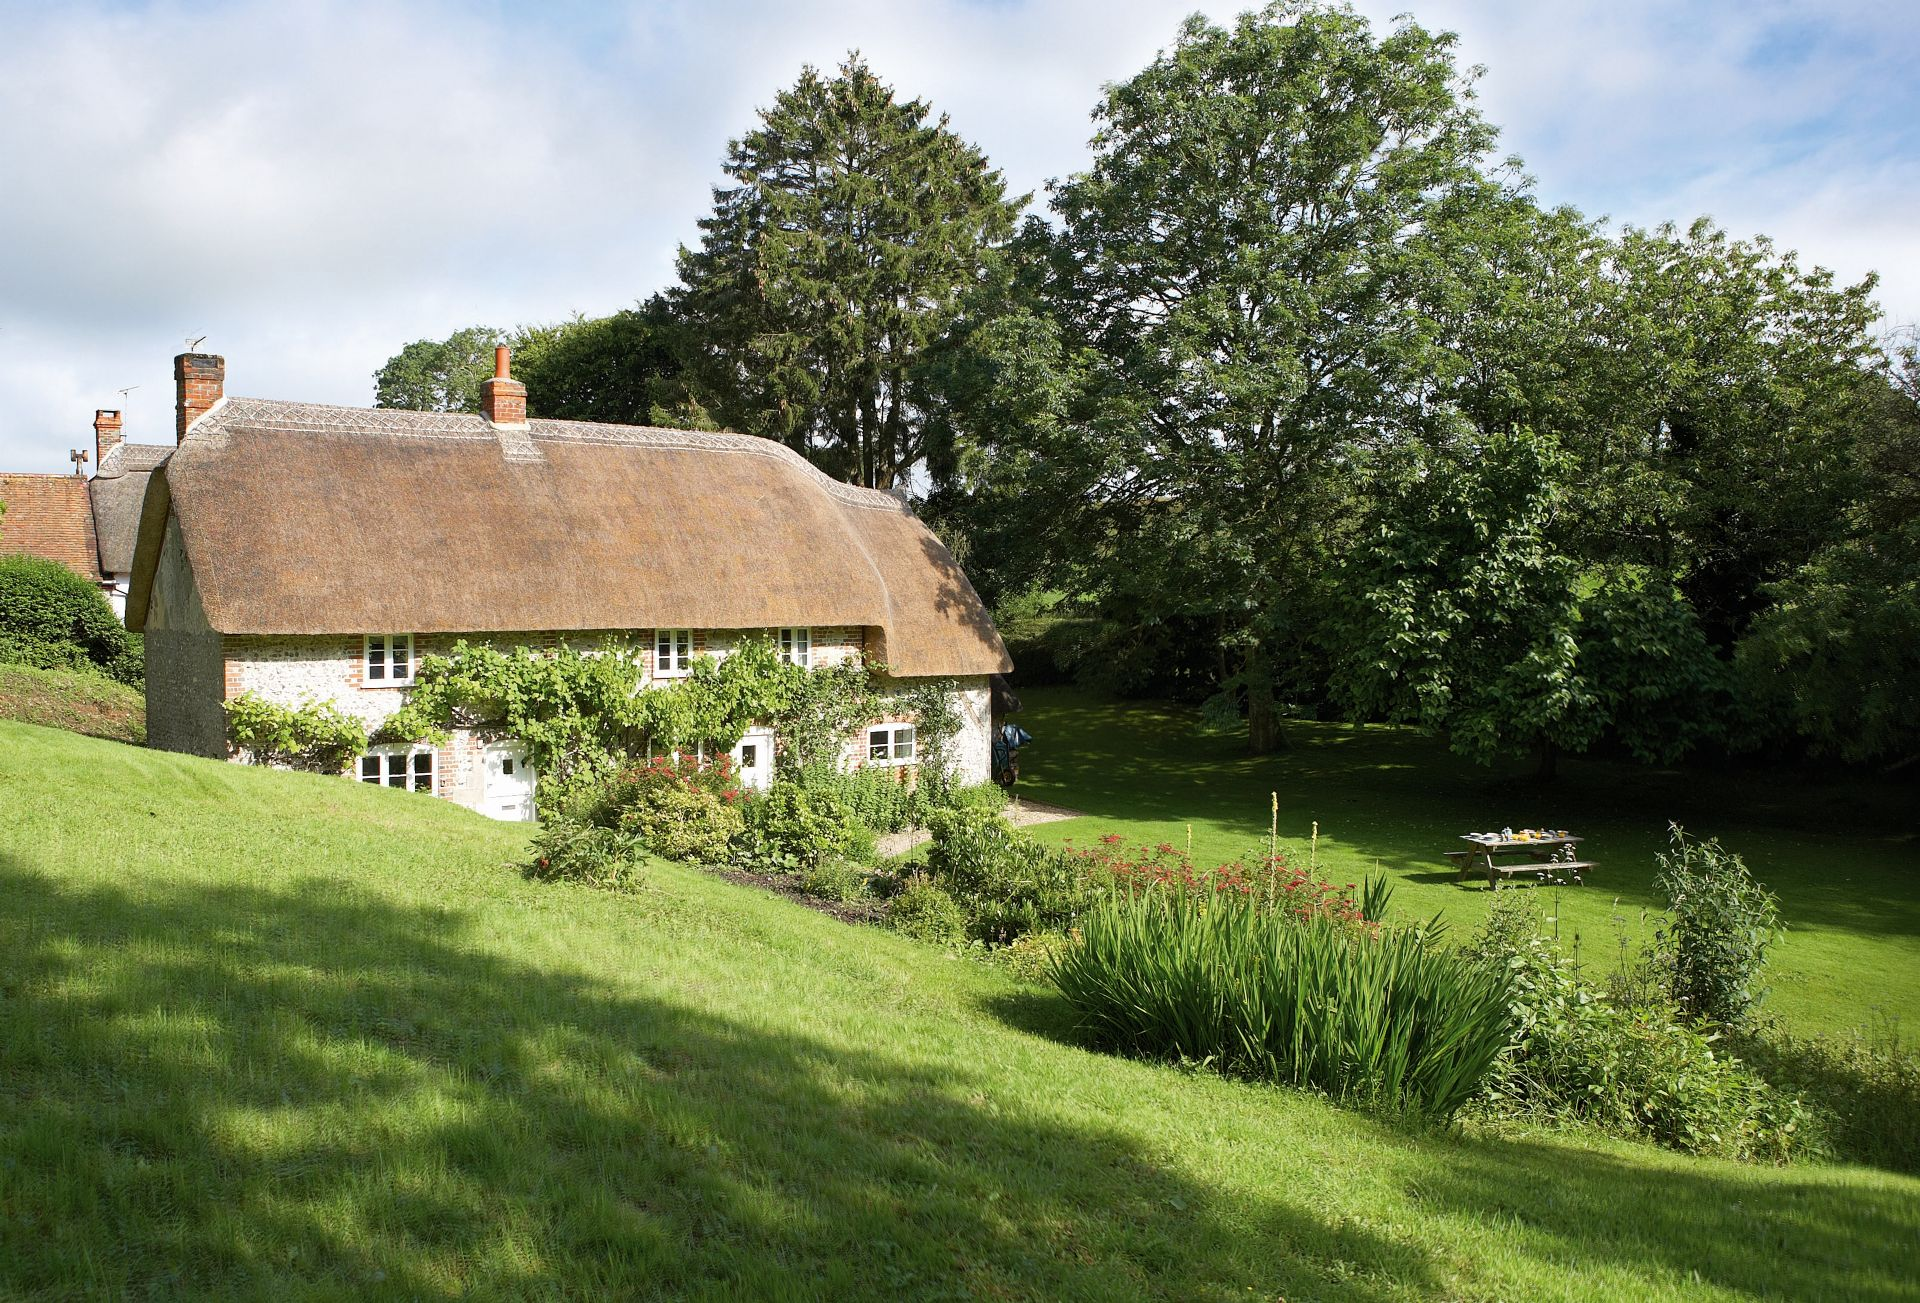 The picturesque Magna Cottage